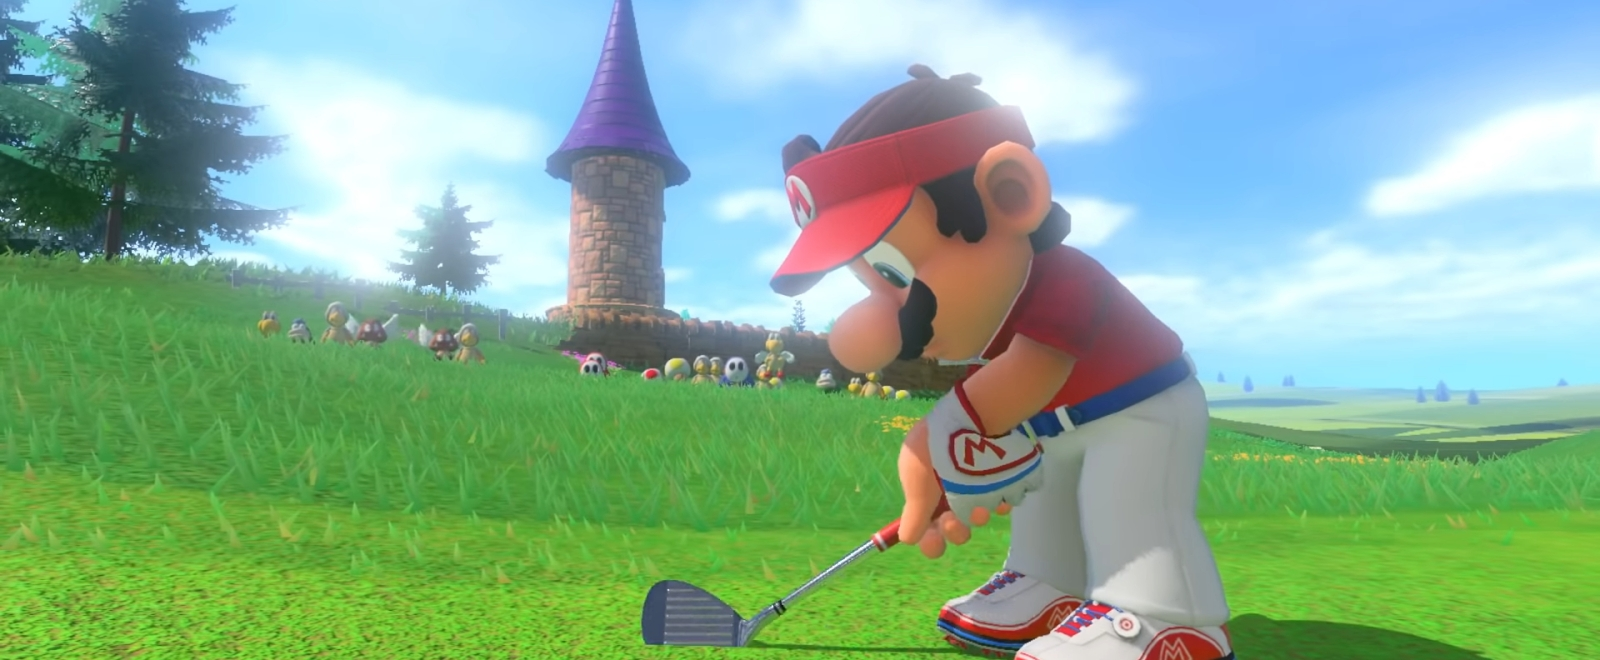 This New 'Mario Golf: Super Rush' Game Mode Is 'Mario Kart' Meets Golf